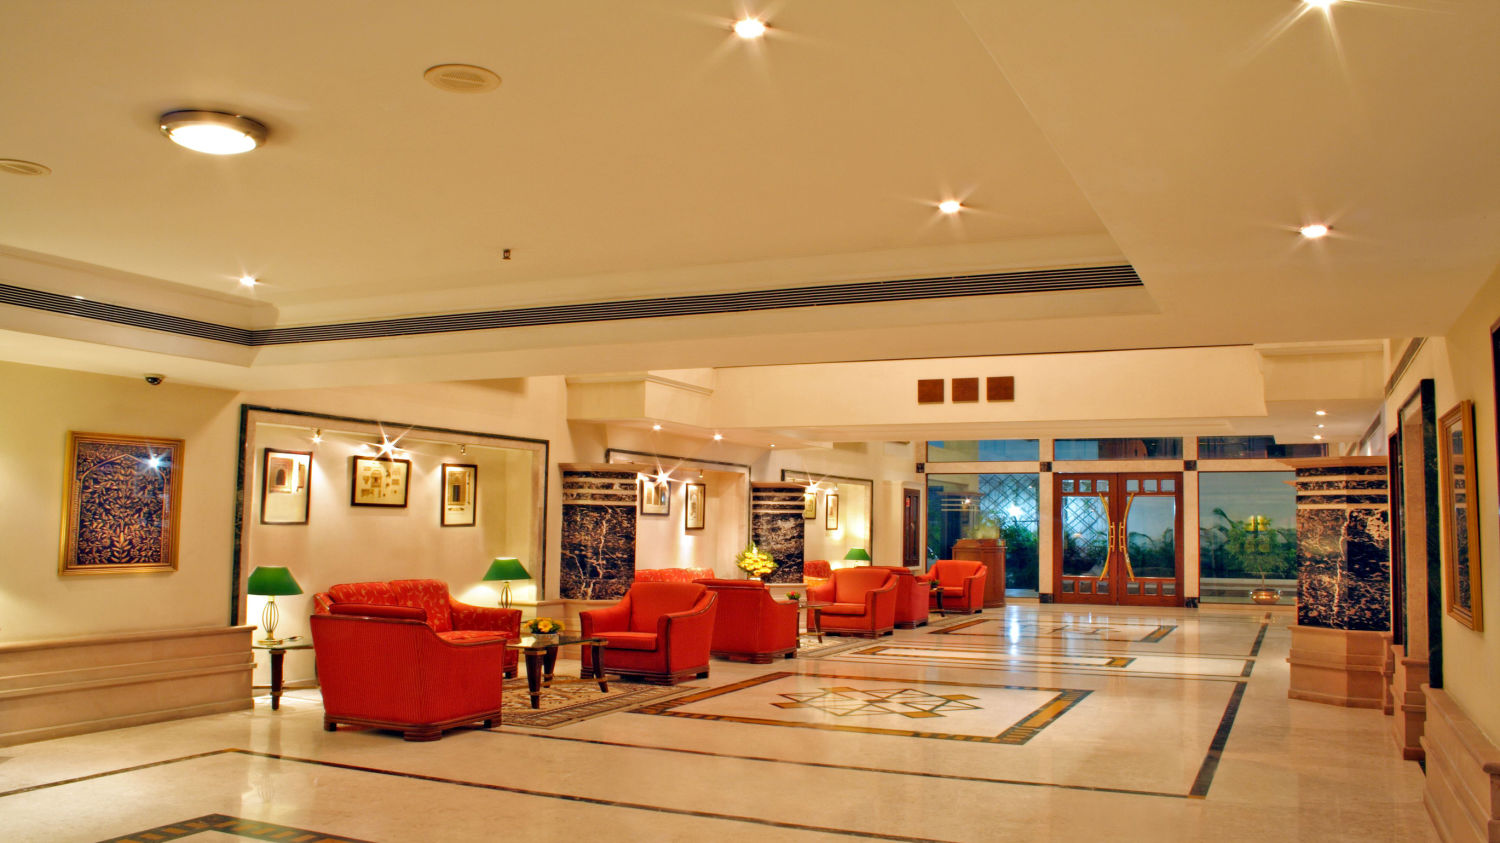 Lobby at Aditya Park Hyderabad, best hotels in hyderabad 1